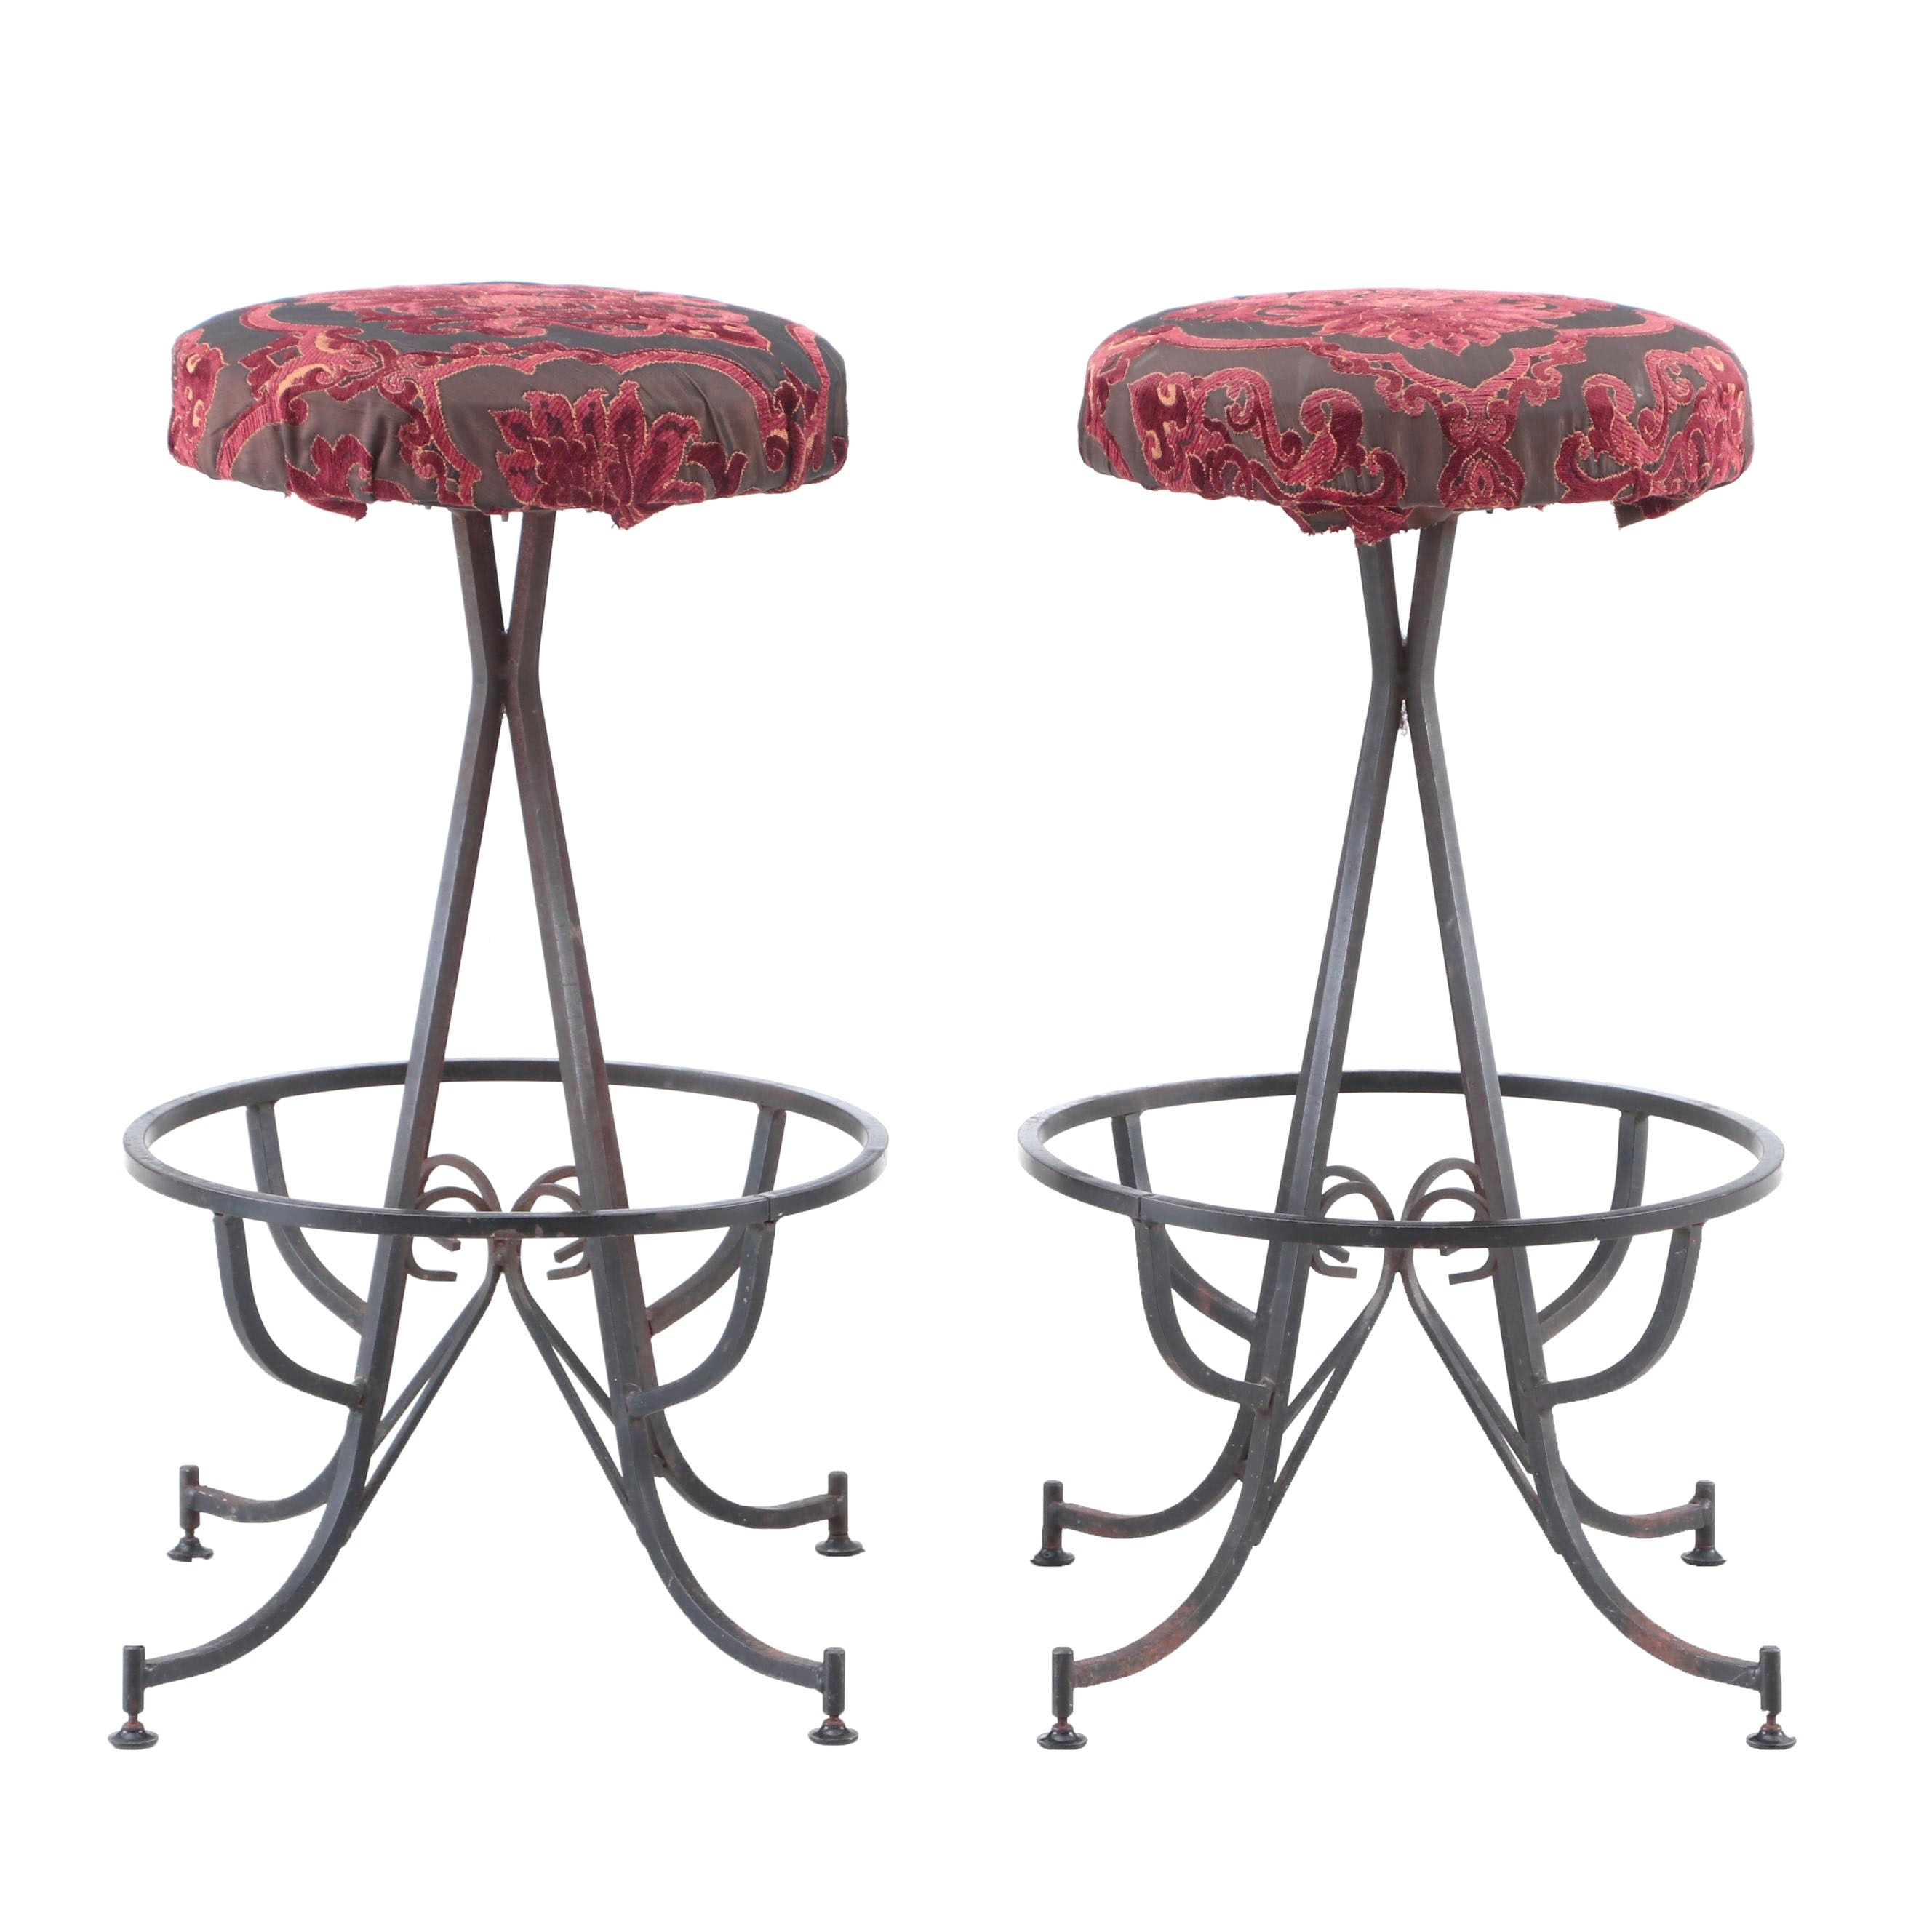 Wrought Iron Swivel Bar Stools with Brocade Upholstered Seats